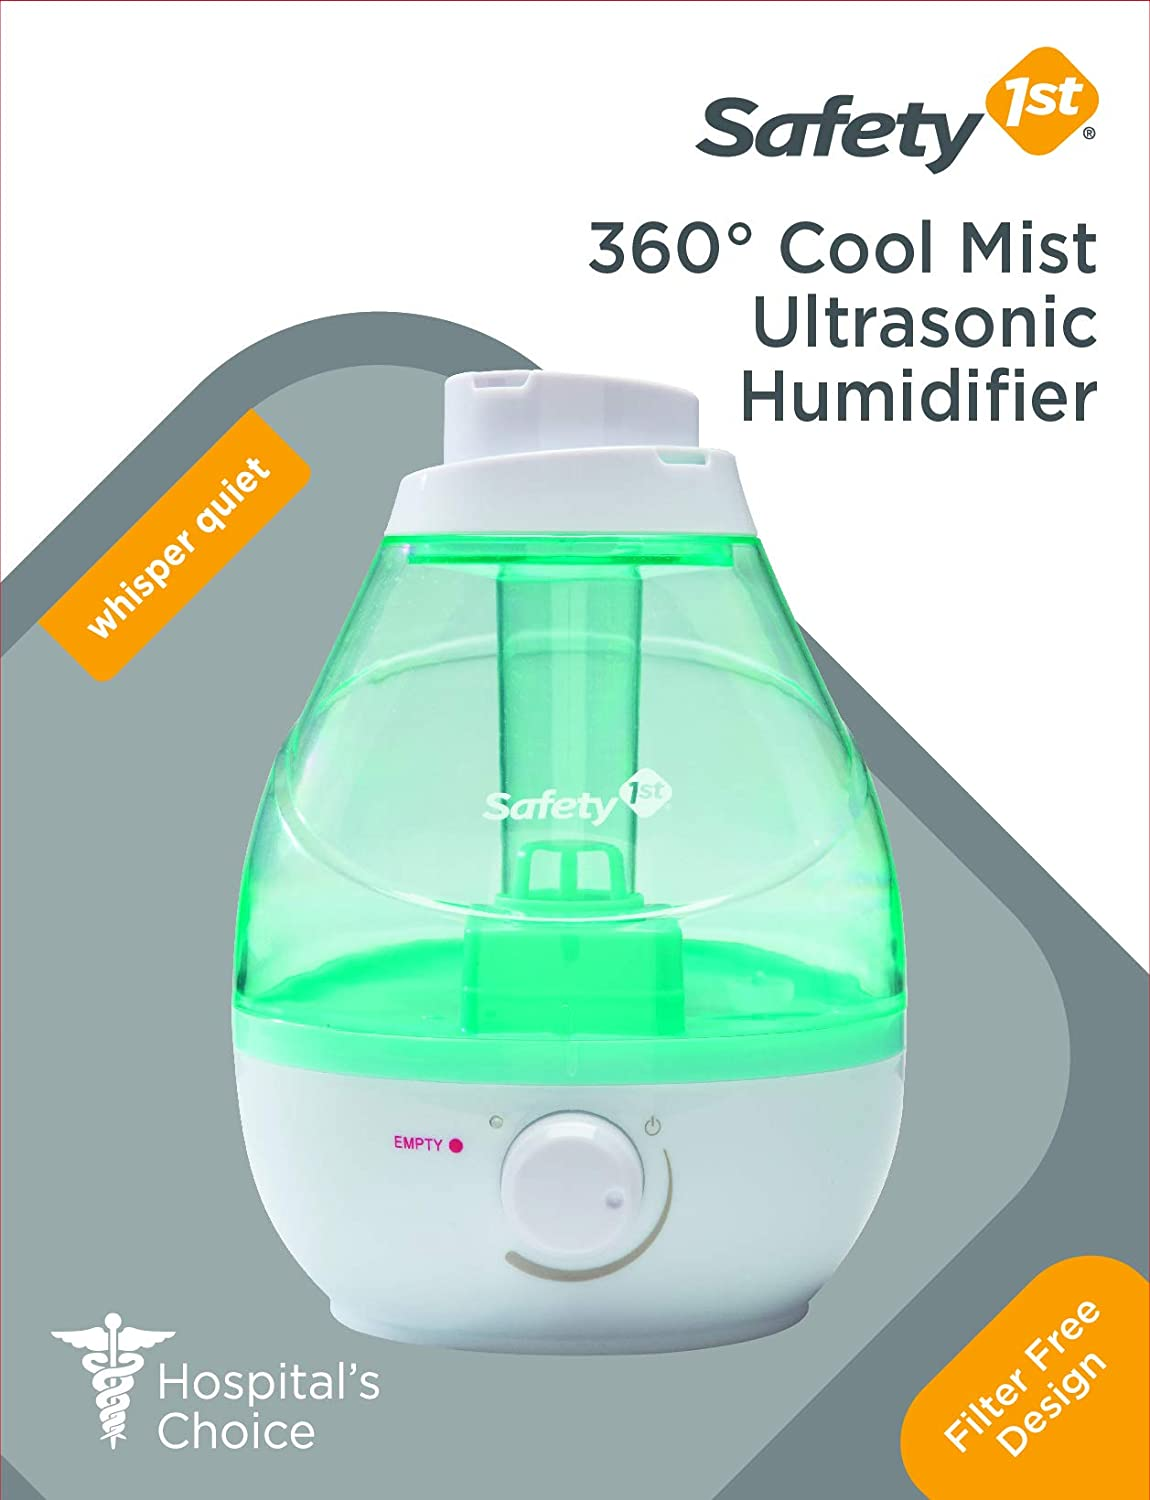 Safety 1st 360 Degree Cool Mist Ultrasonic Humidifier